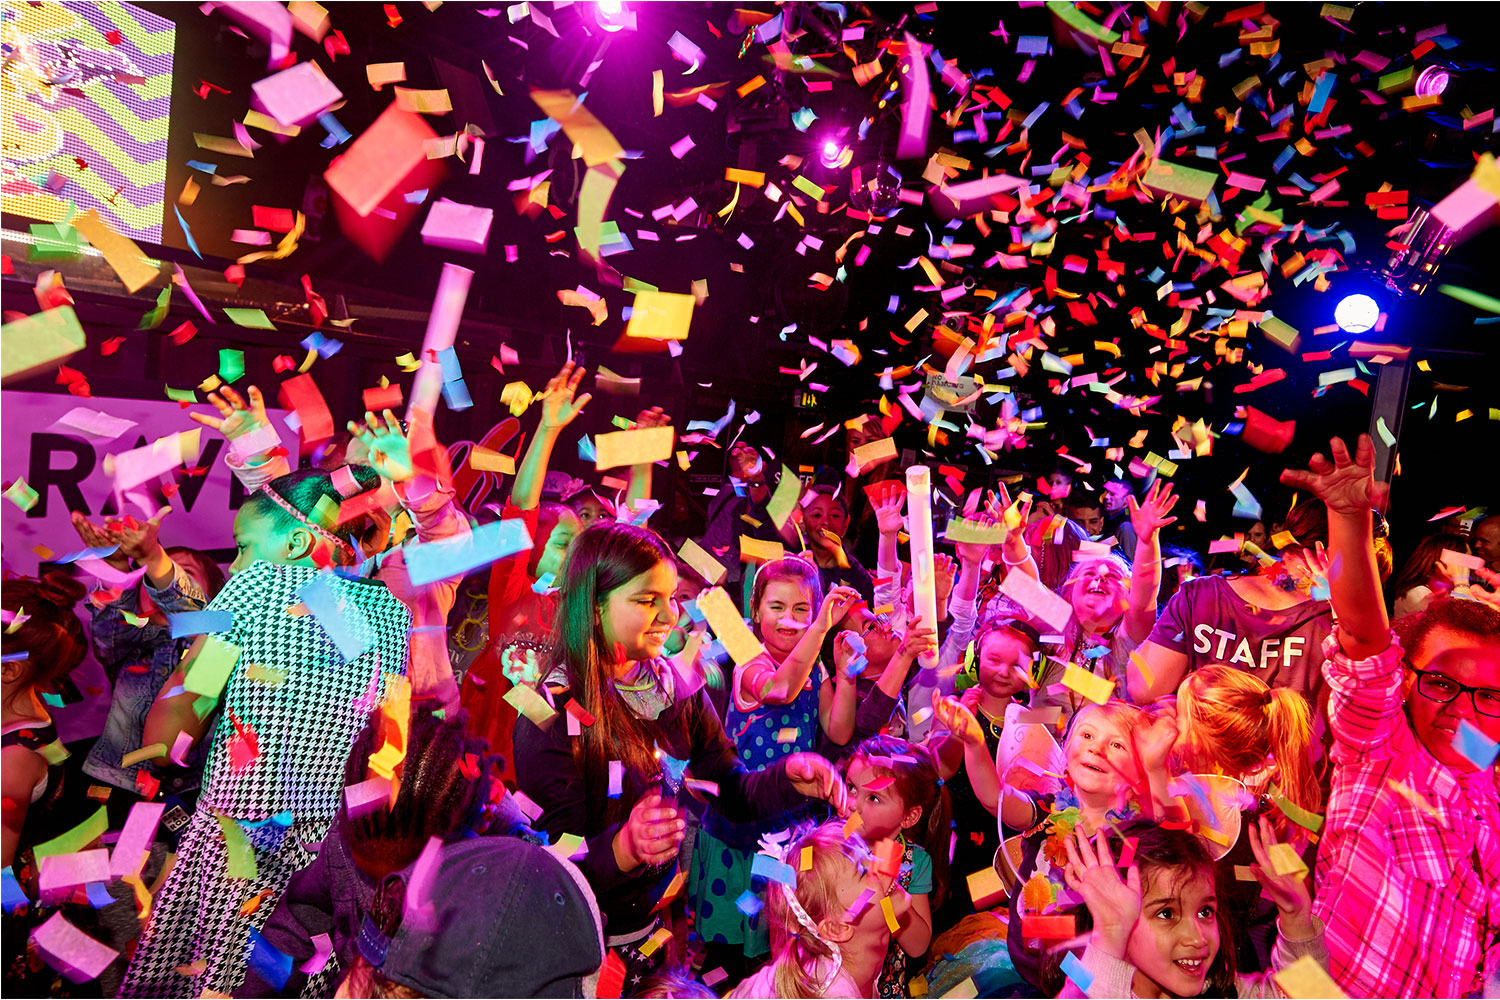 A First-Ever Family-Friendly Rave Set to Launch in Dubai